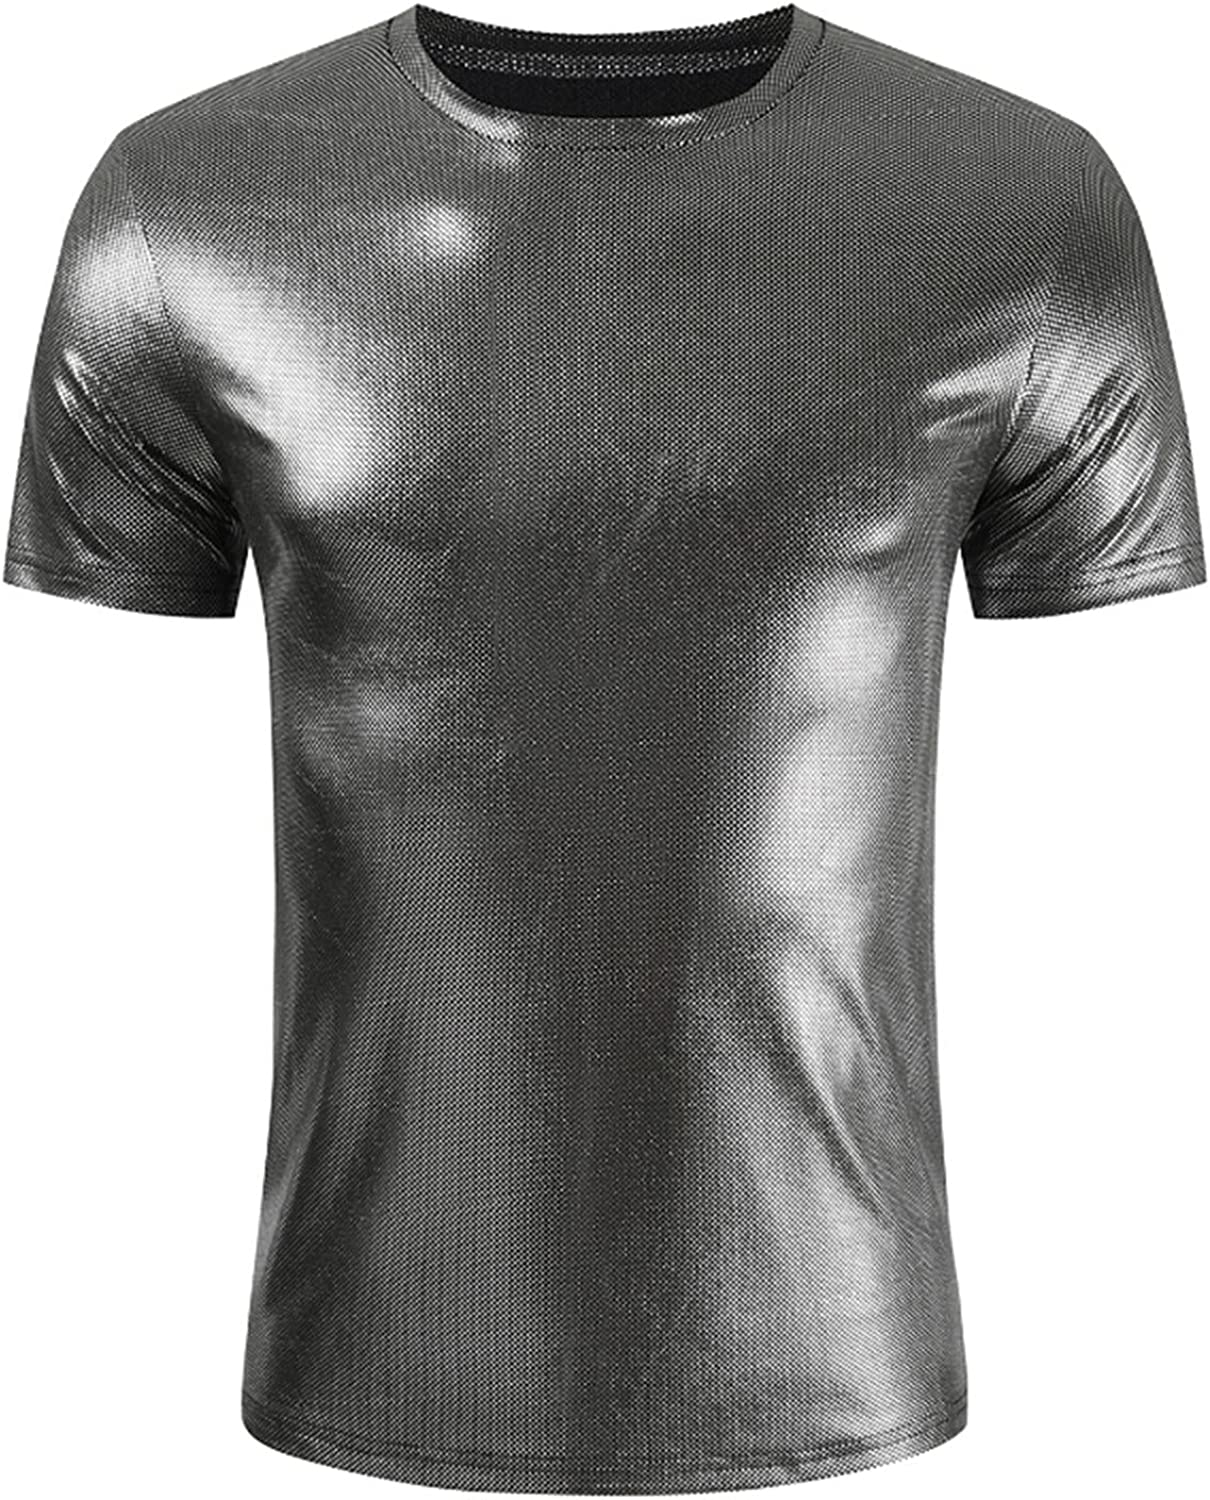 FUNEY Men's Hipster Shiny Metallic Tshirt Short Sleeve V-Neck Slim Fit Muscle Smooth Pullover Tops Clubwear for Nightclub